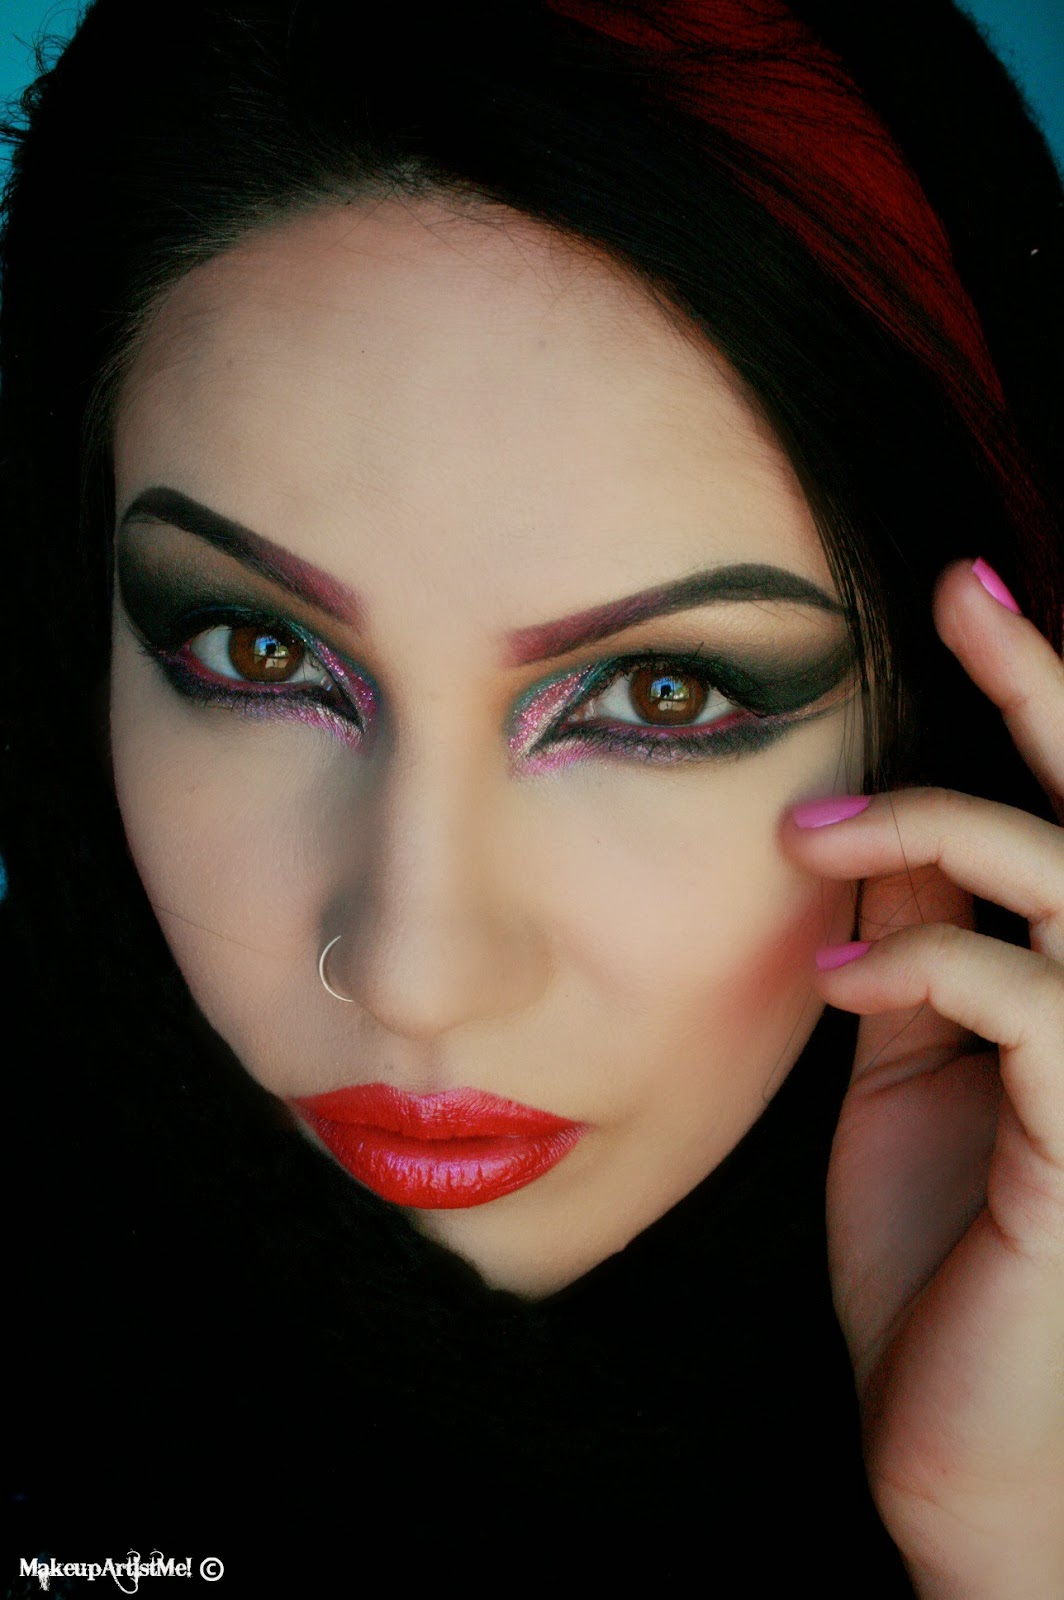 Make-up Artist Me!: Arabic Drama